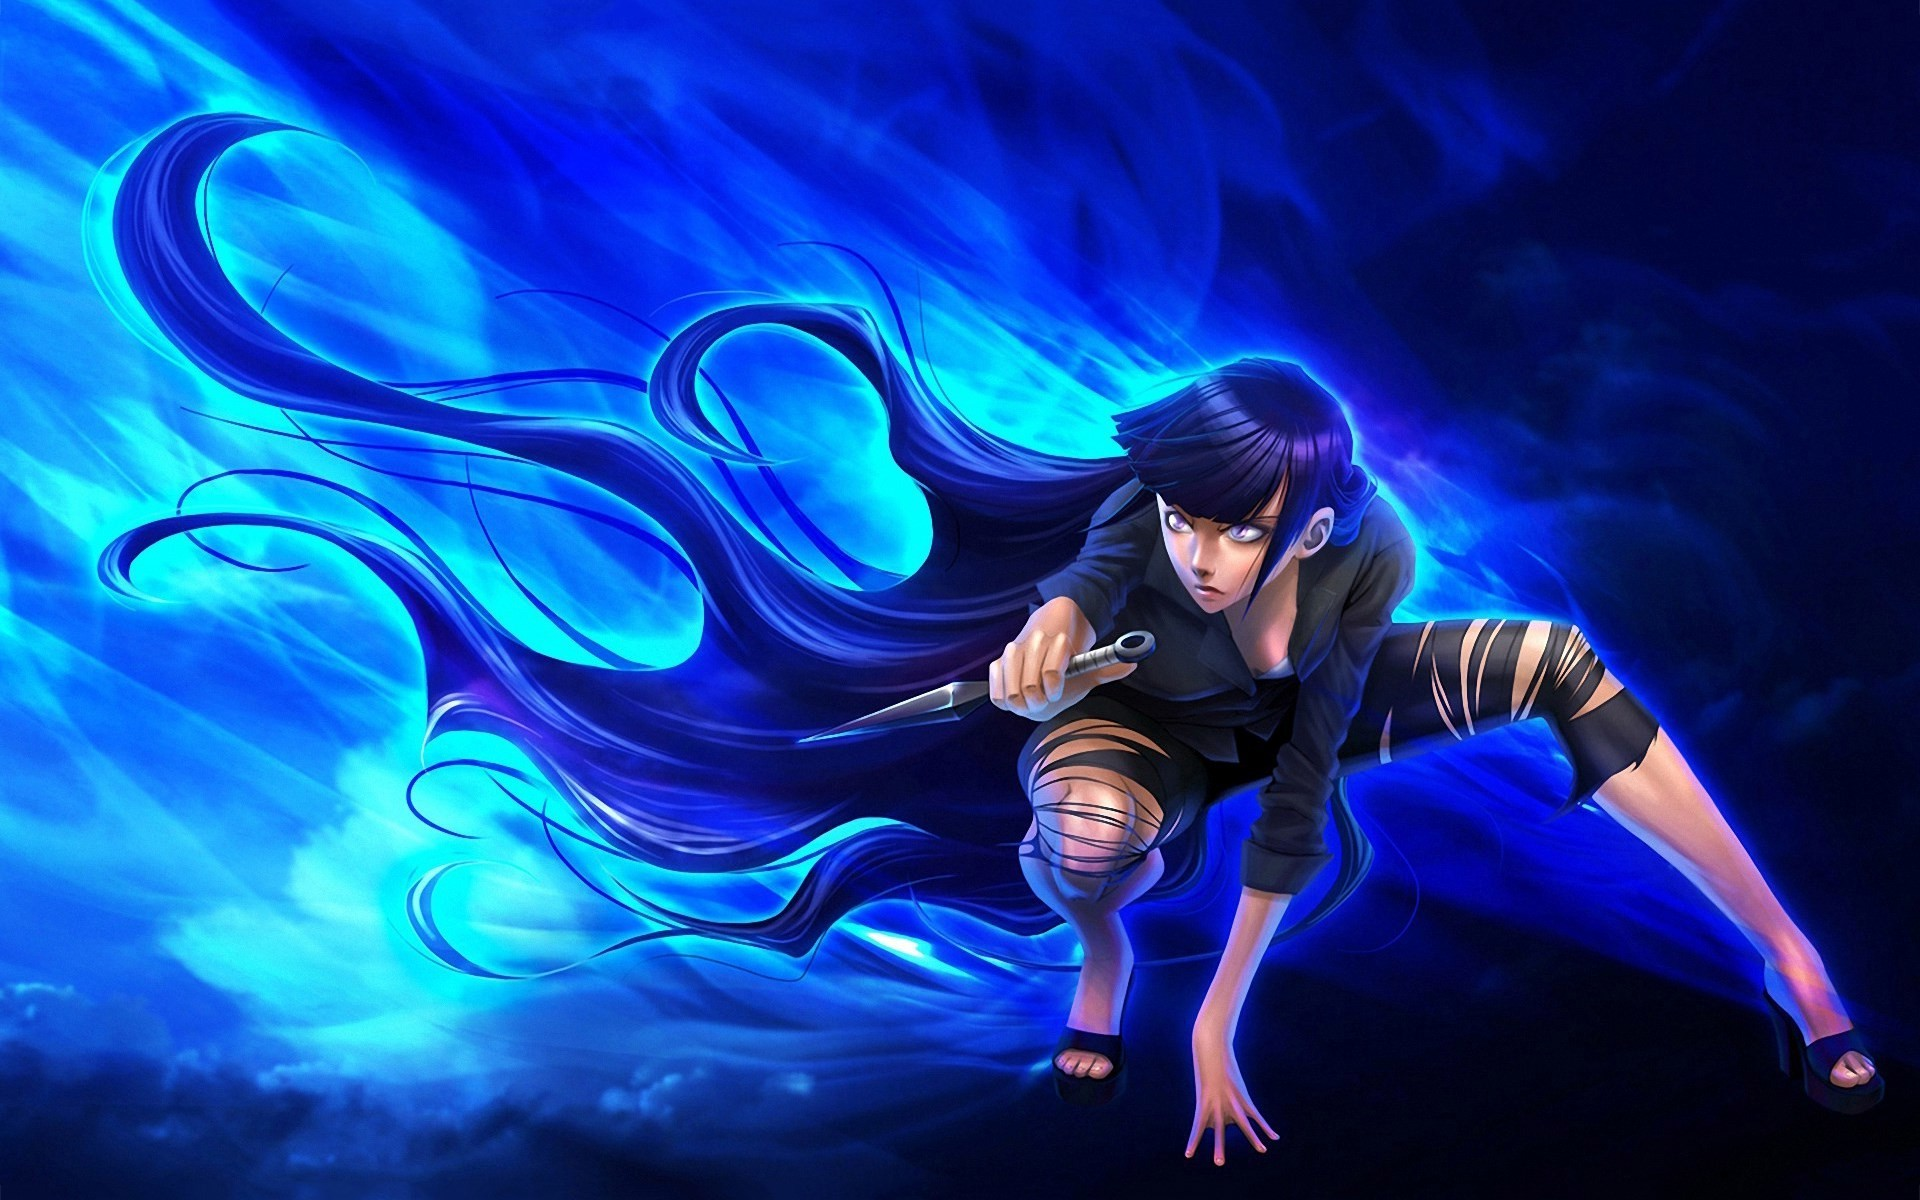 979503 top cool naruto wallpapers hd 1920x1200 for phones